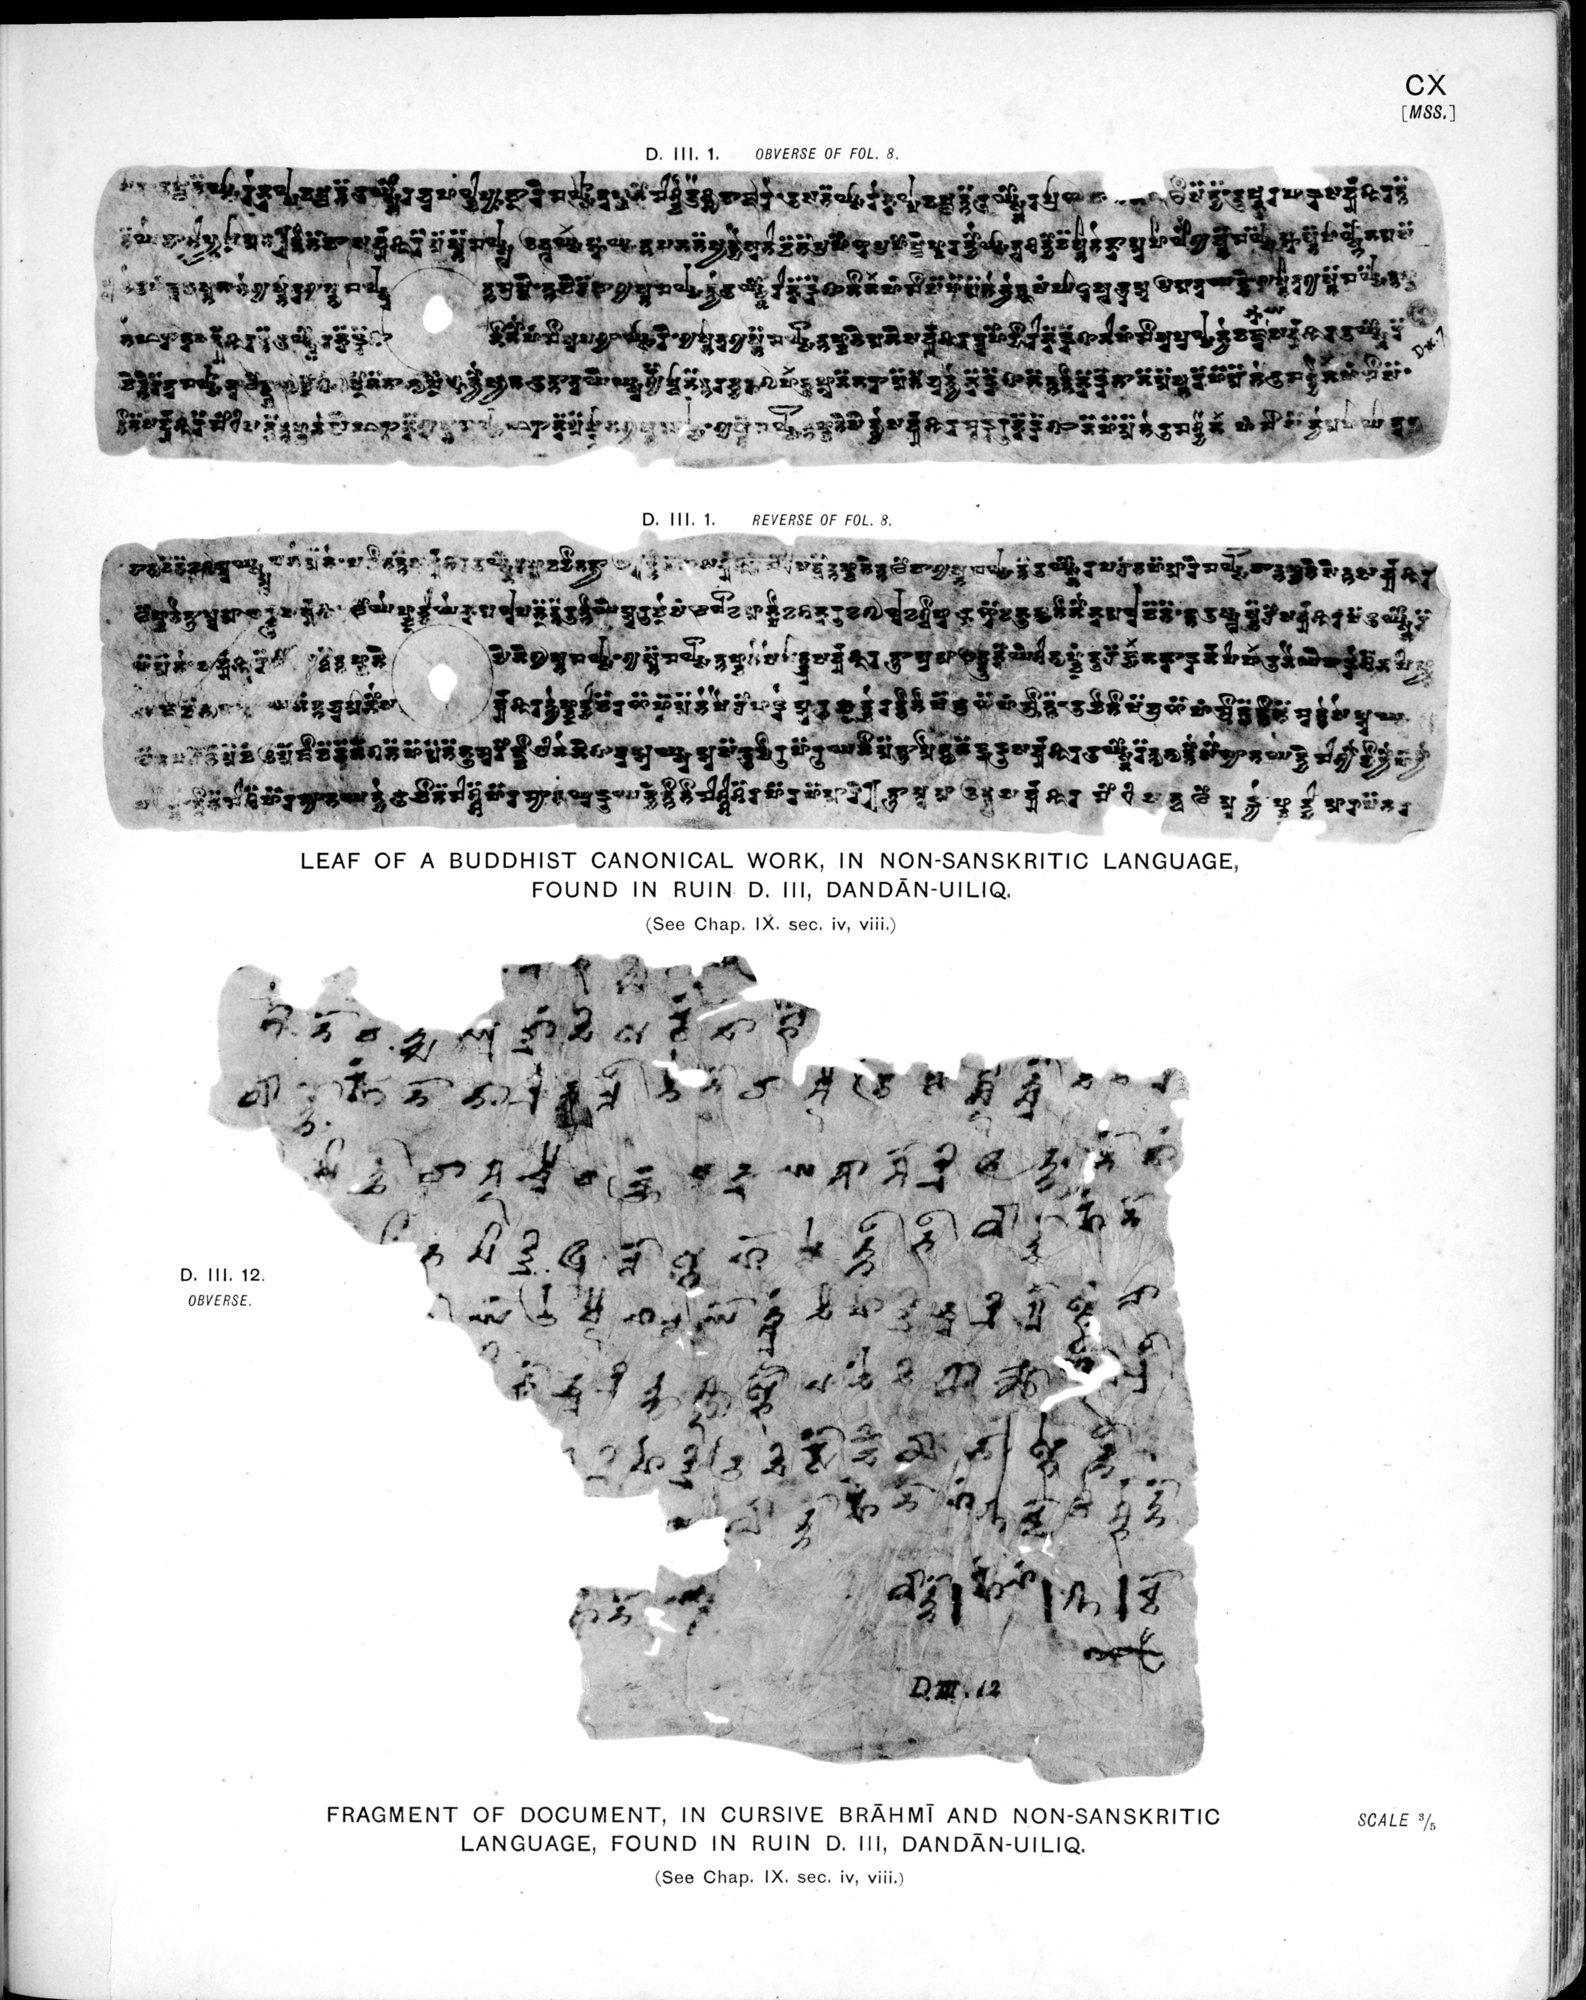 Ancient Khotan : vol.2 / Page 231 (Grayscale High Resolution Image)